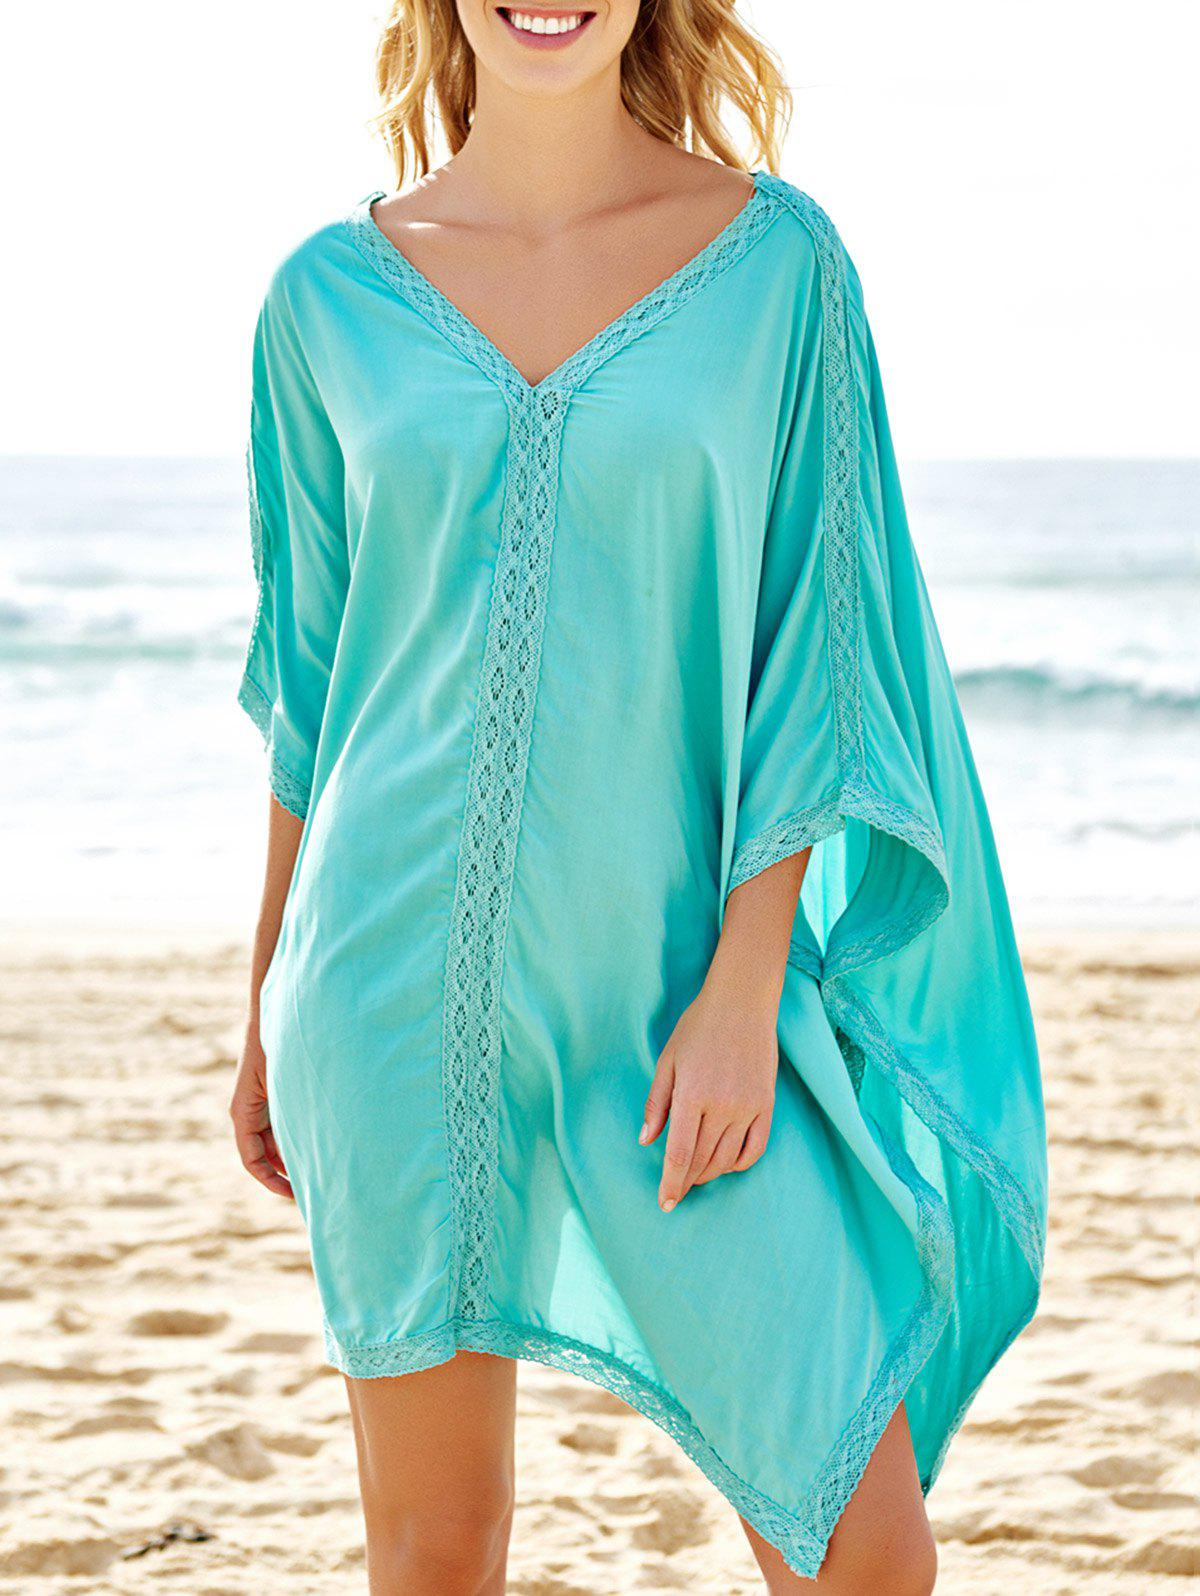 Stylish Plunging Neck Spliced 3/4 Sleeve Women's Cover-Up - BLUE ONE SIZE(FIT SIZE XS TO M)